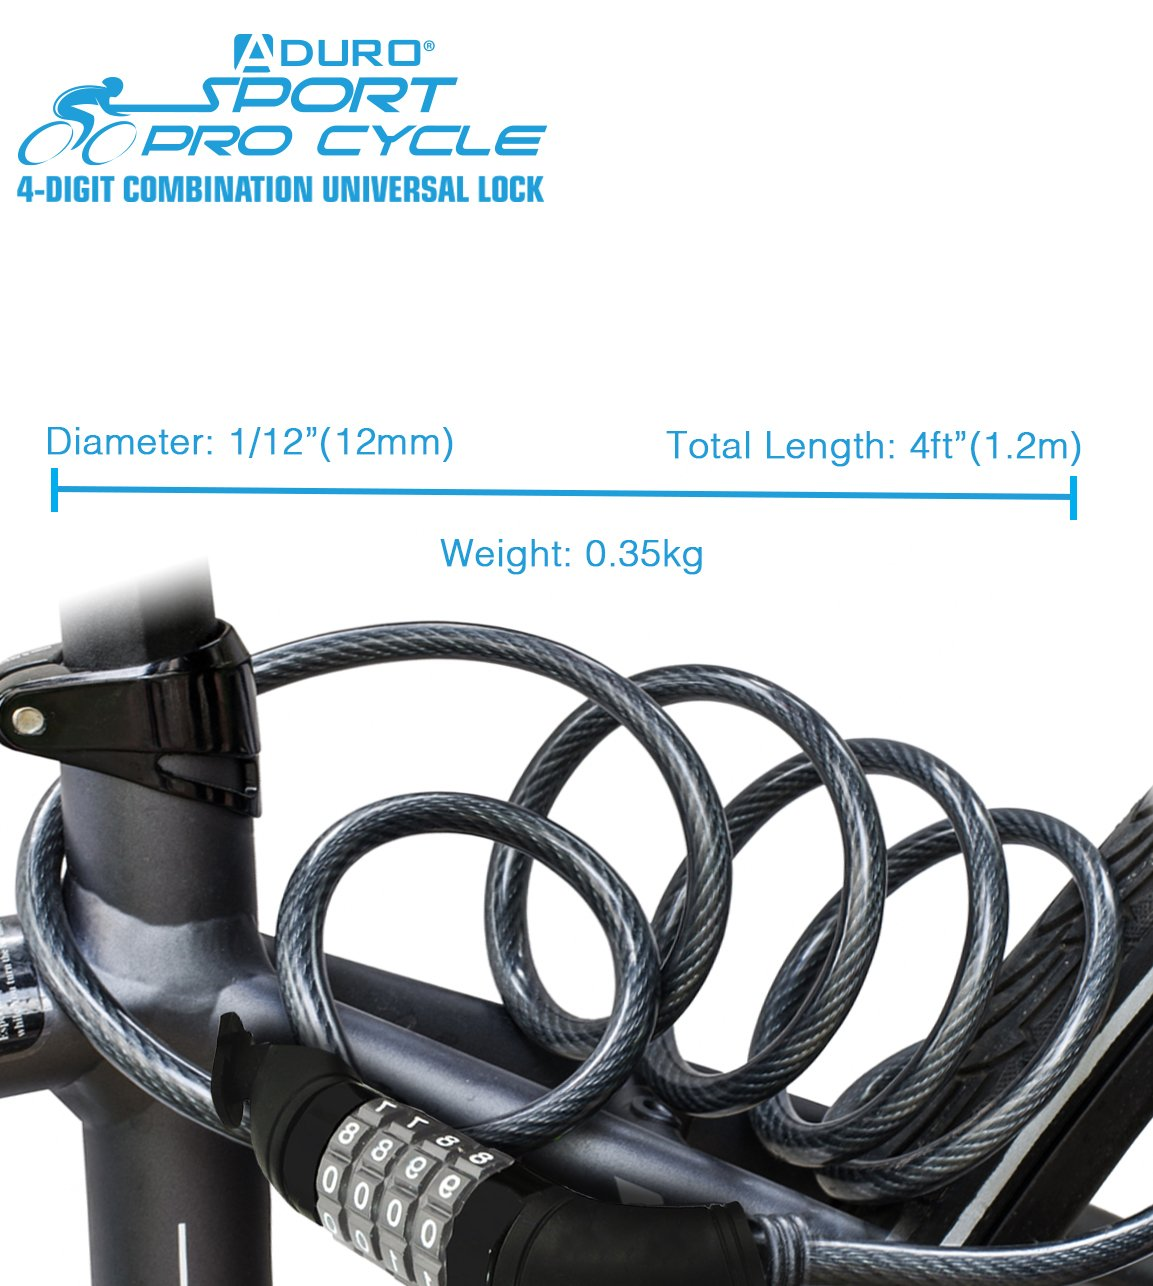 Aduro Sport Bike Lock Cable, 4-Feet Bicycle Master Cable Lock with 4-Digit Combination Lightweight Bike Chain Lock by Aduro (Image #7)